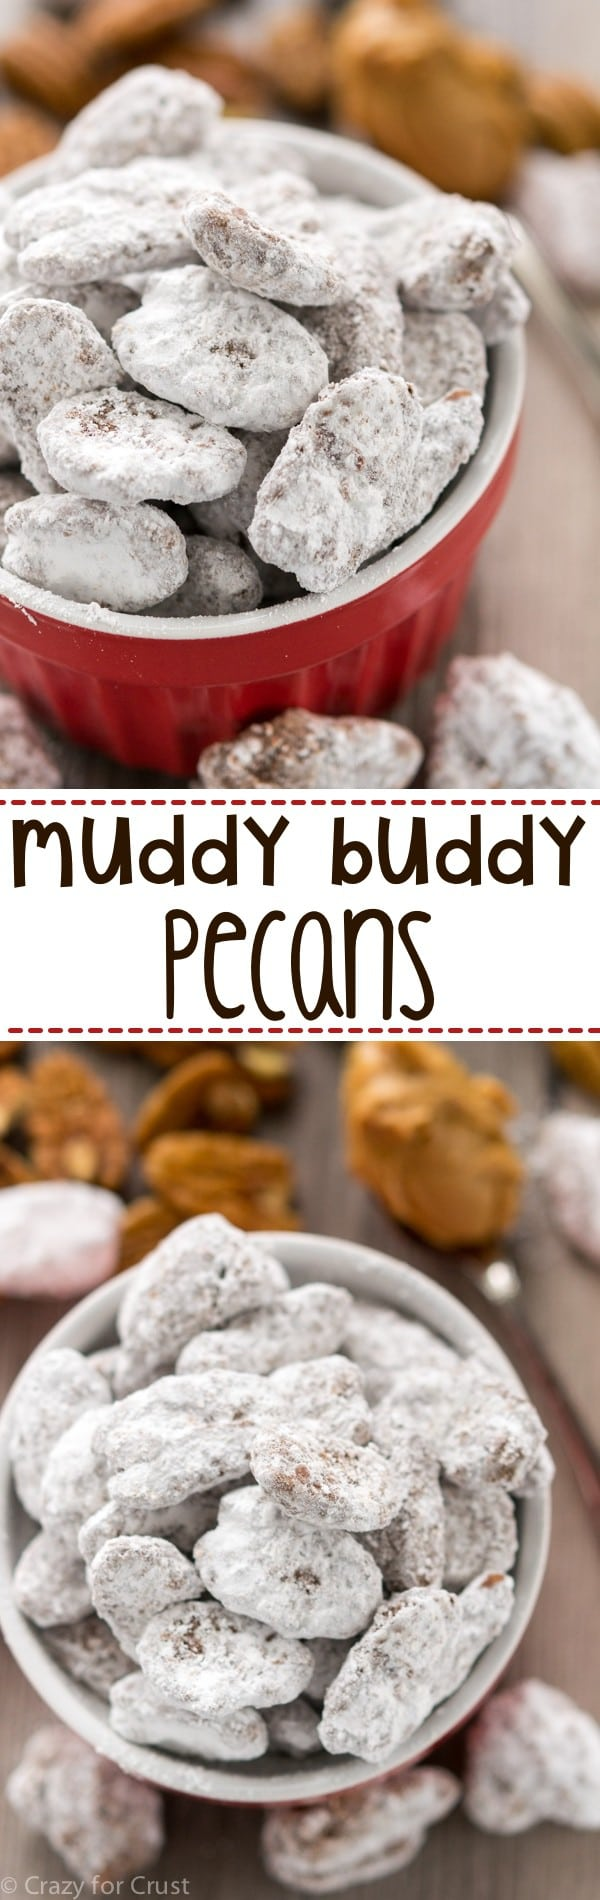 Muddy Buddy Pecans - Crazy for Crust